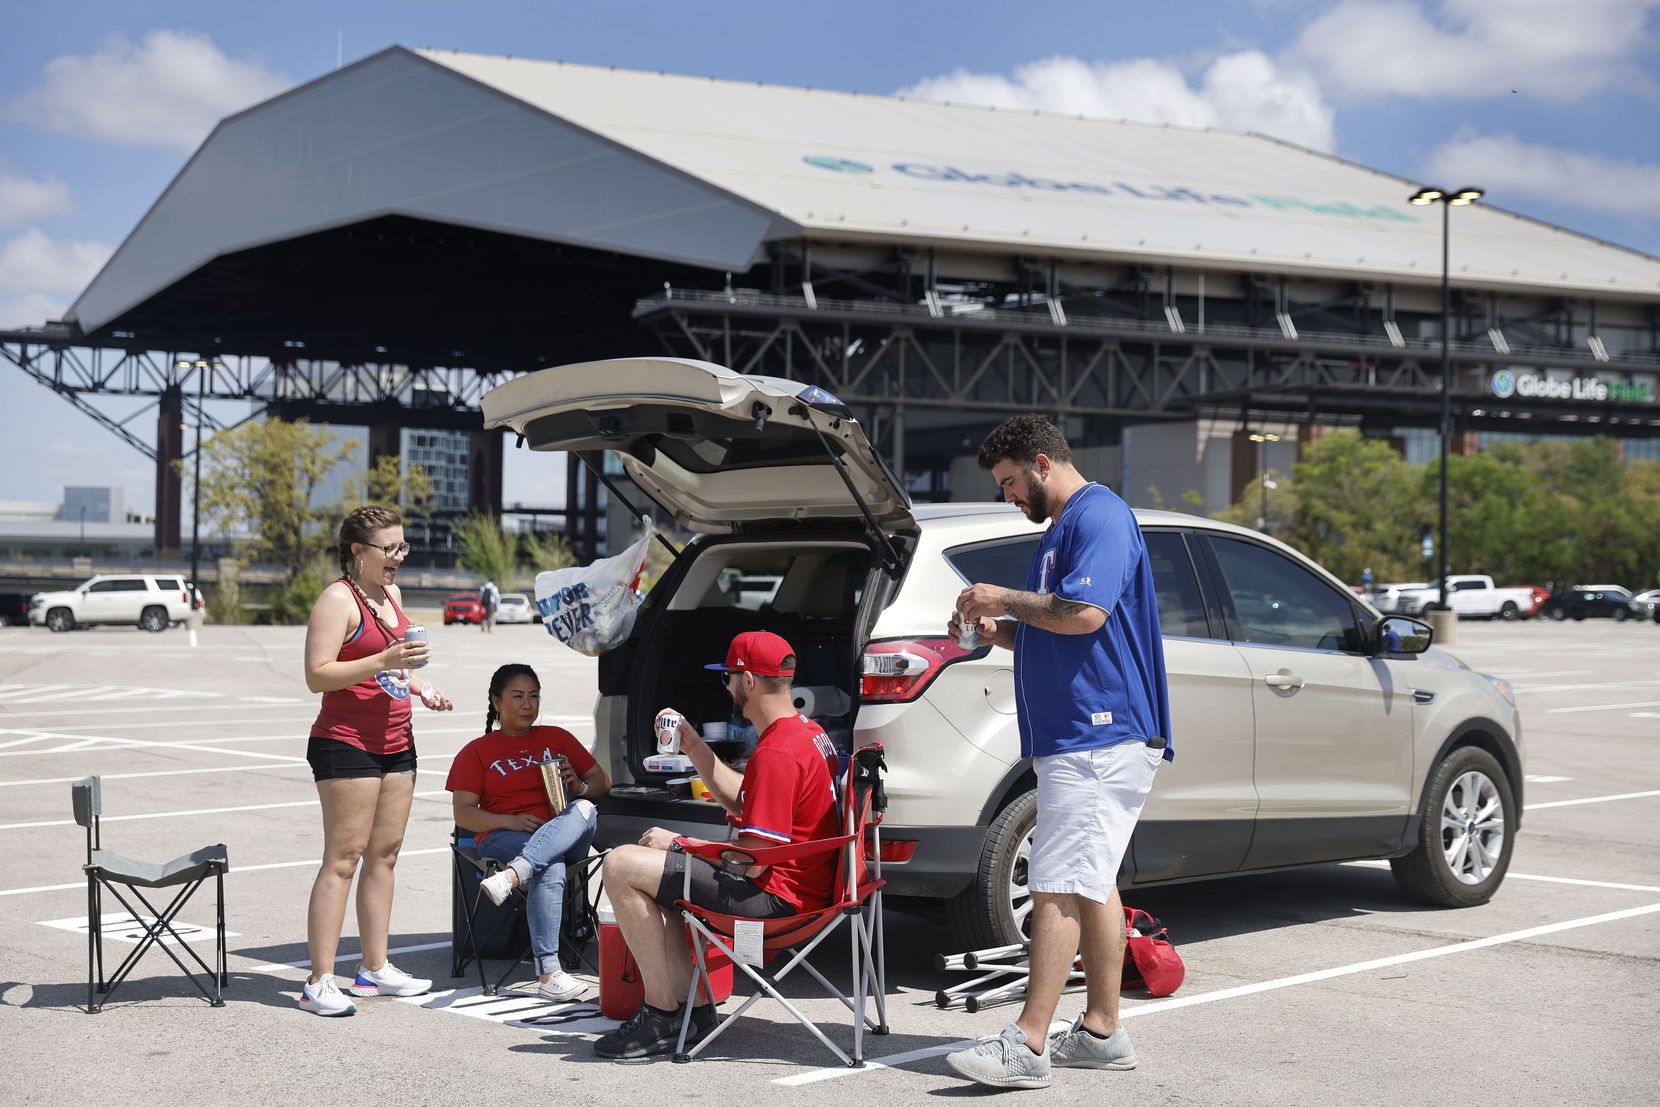 Texas Rangers fans enjoy an Opening Day tailgate party on private property outside of Globe Life Field in Arlington, Monday, April 5, 2021. The Rangers are facing the Toronto Blue Jays in the home opener. (Tom Fox/The Dallas Morning News)